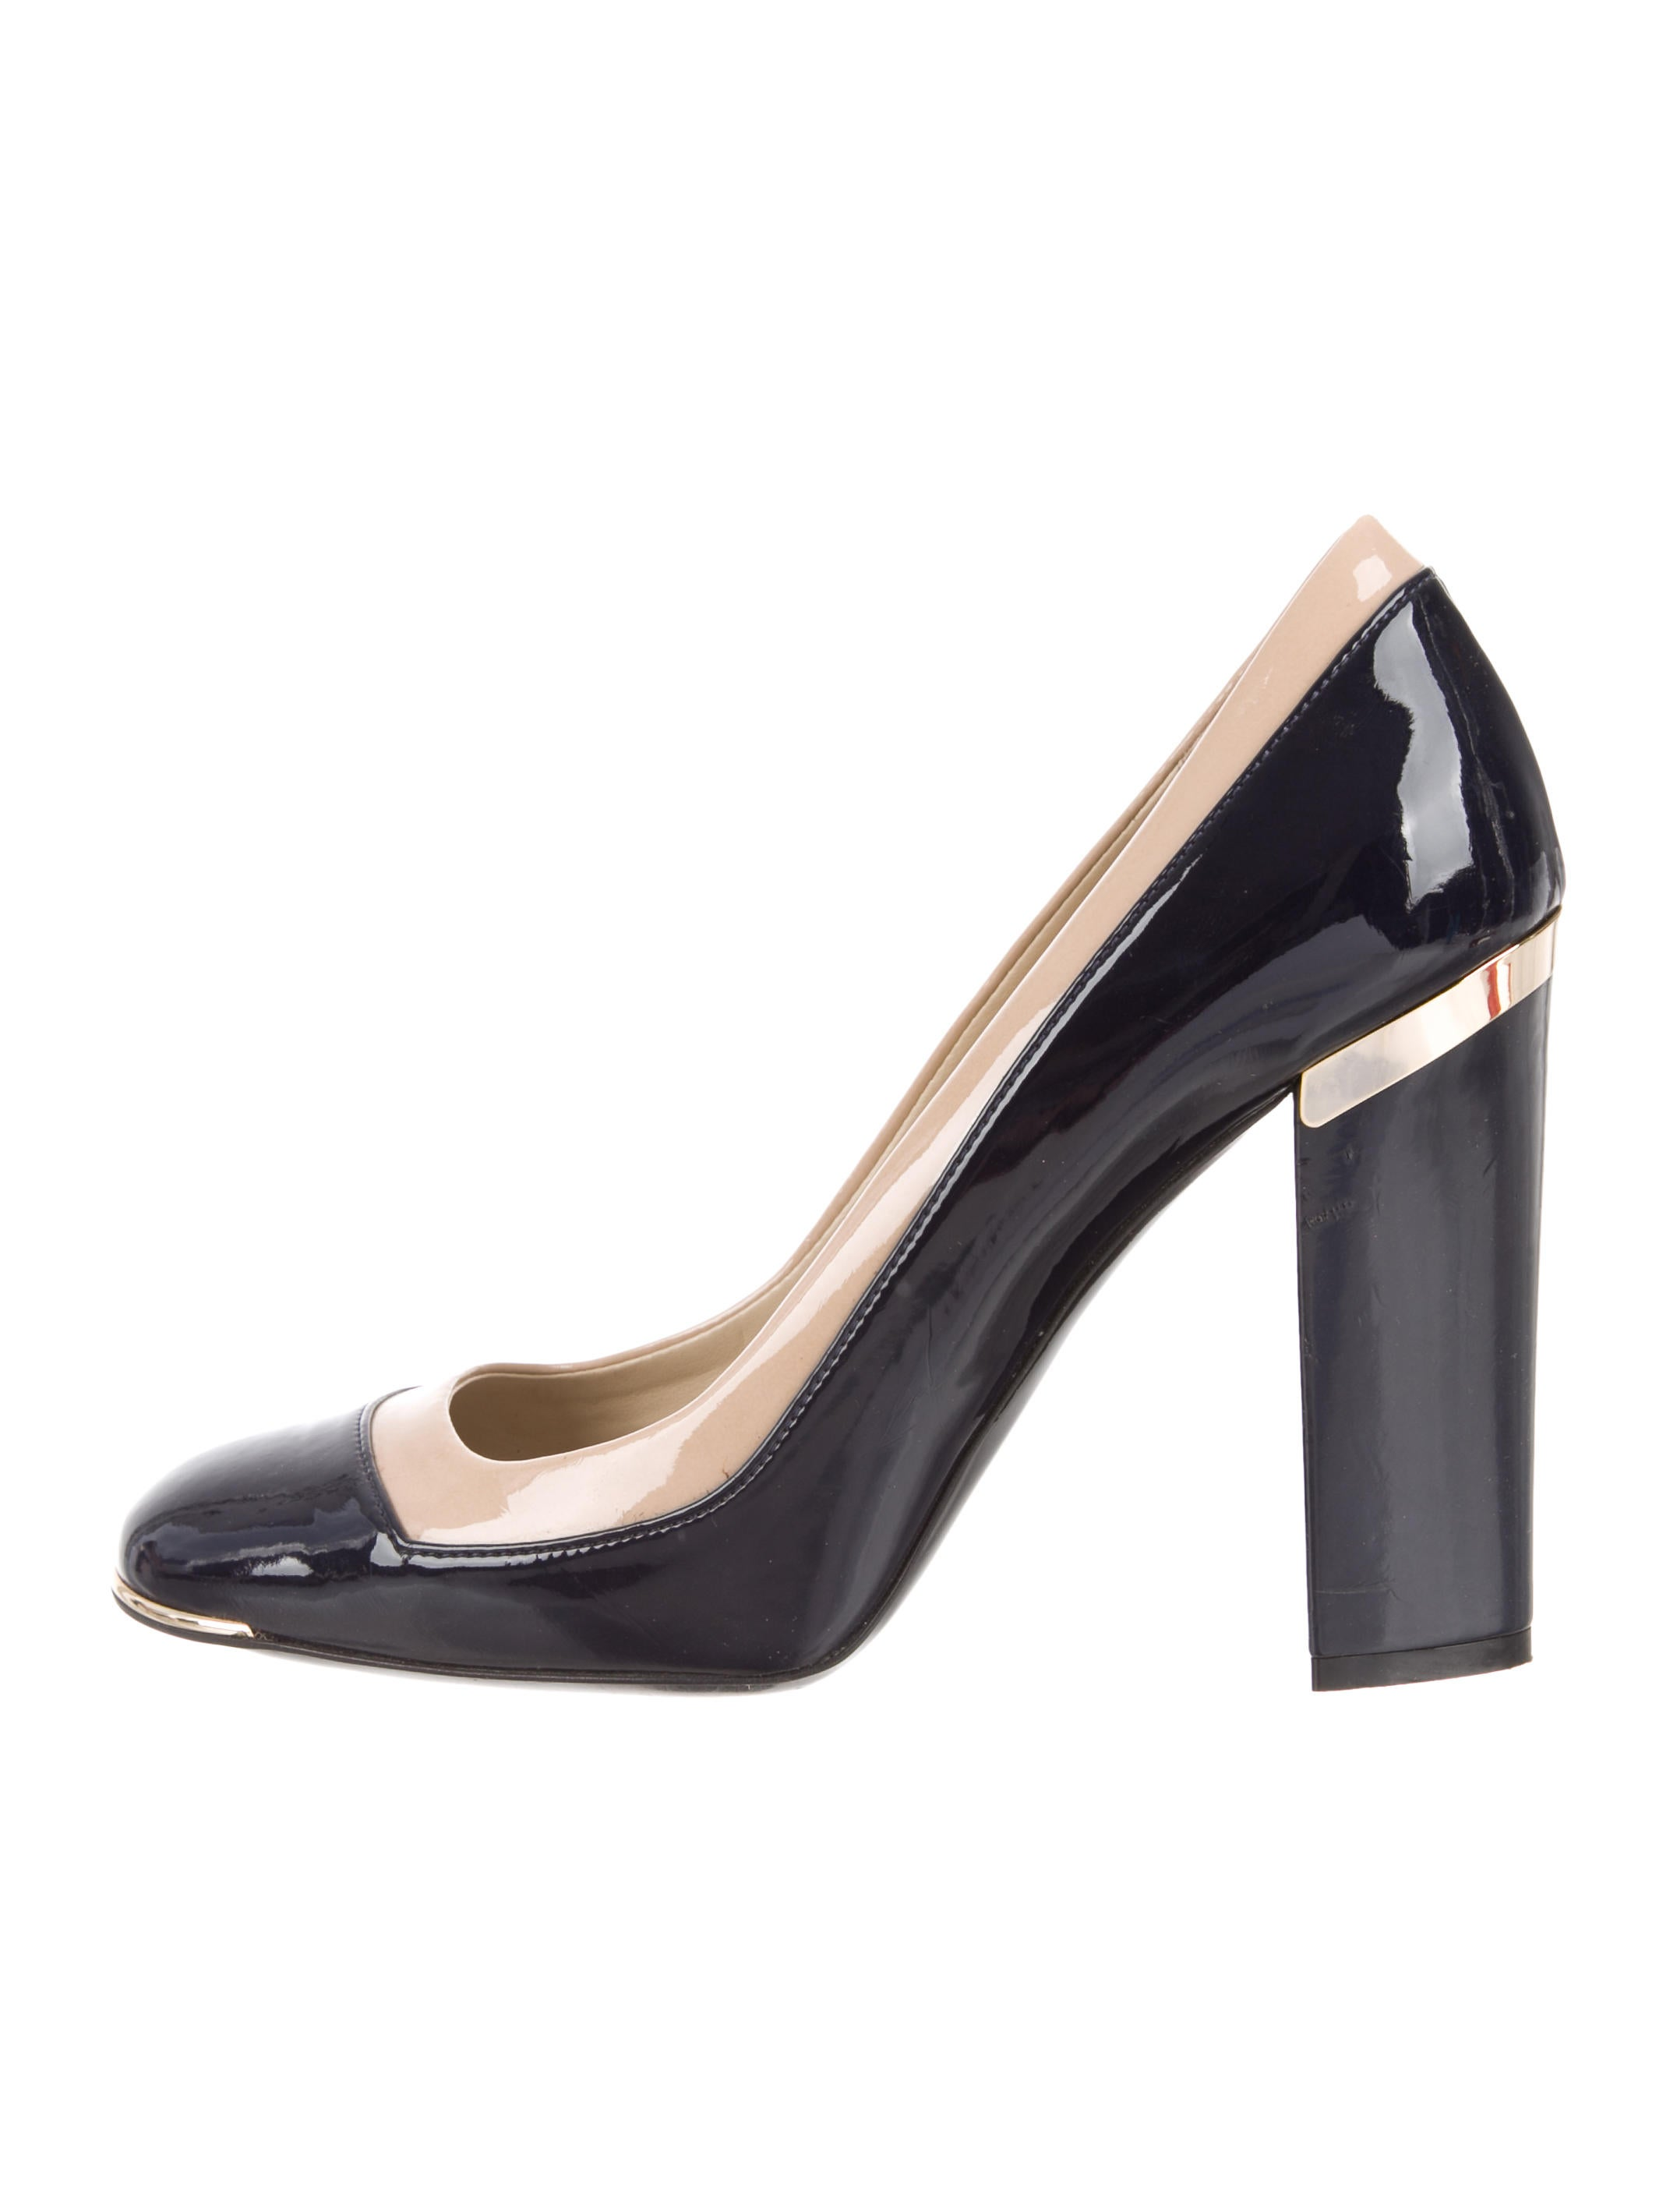 Stella McCartney Vegan Square-Toe Pumps fast delivery for sale authentic for sale discount big discount reliable sale cost hM5UCc